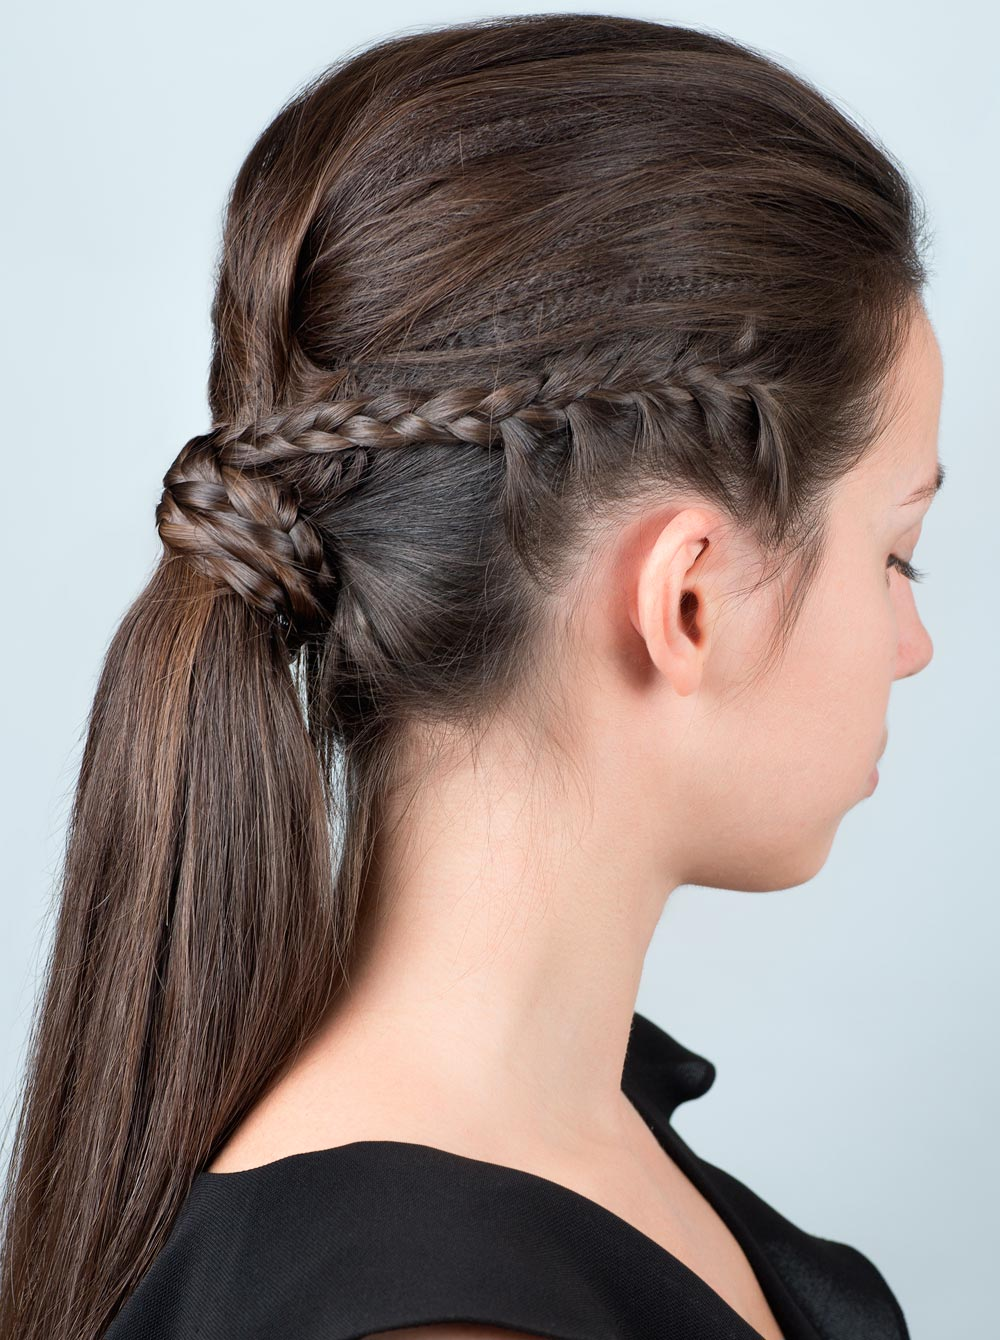 hairstyle new year with braids